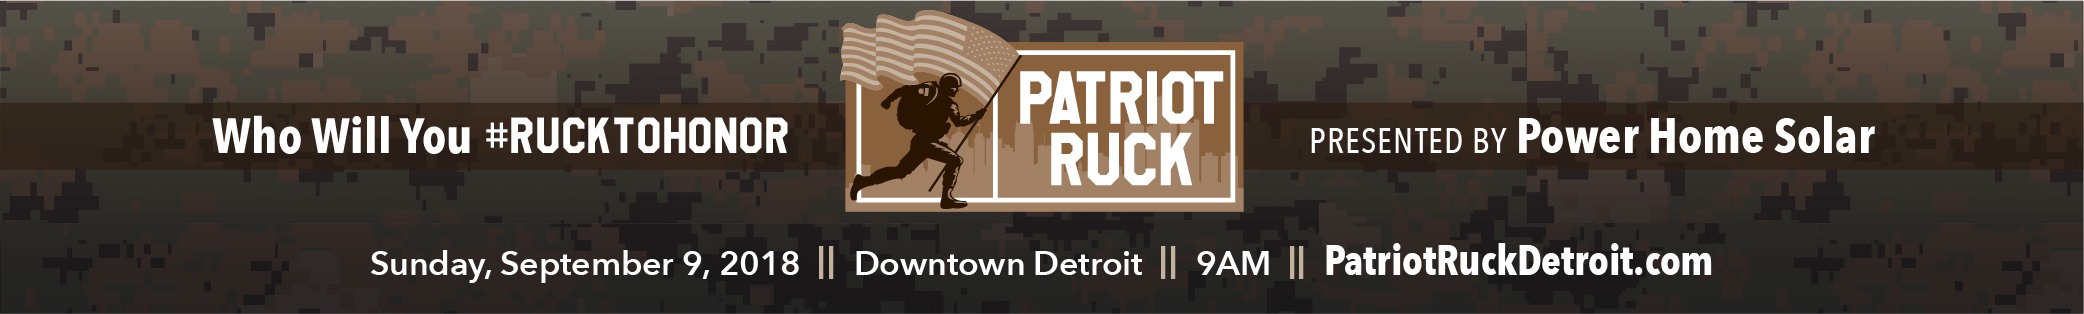 Register for the 2018 Patriot Ruck - Detroit